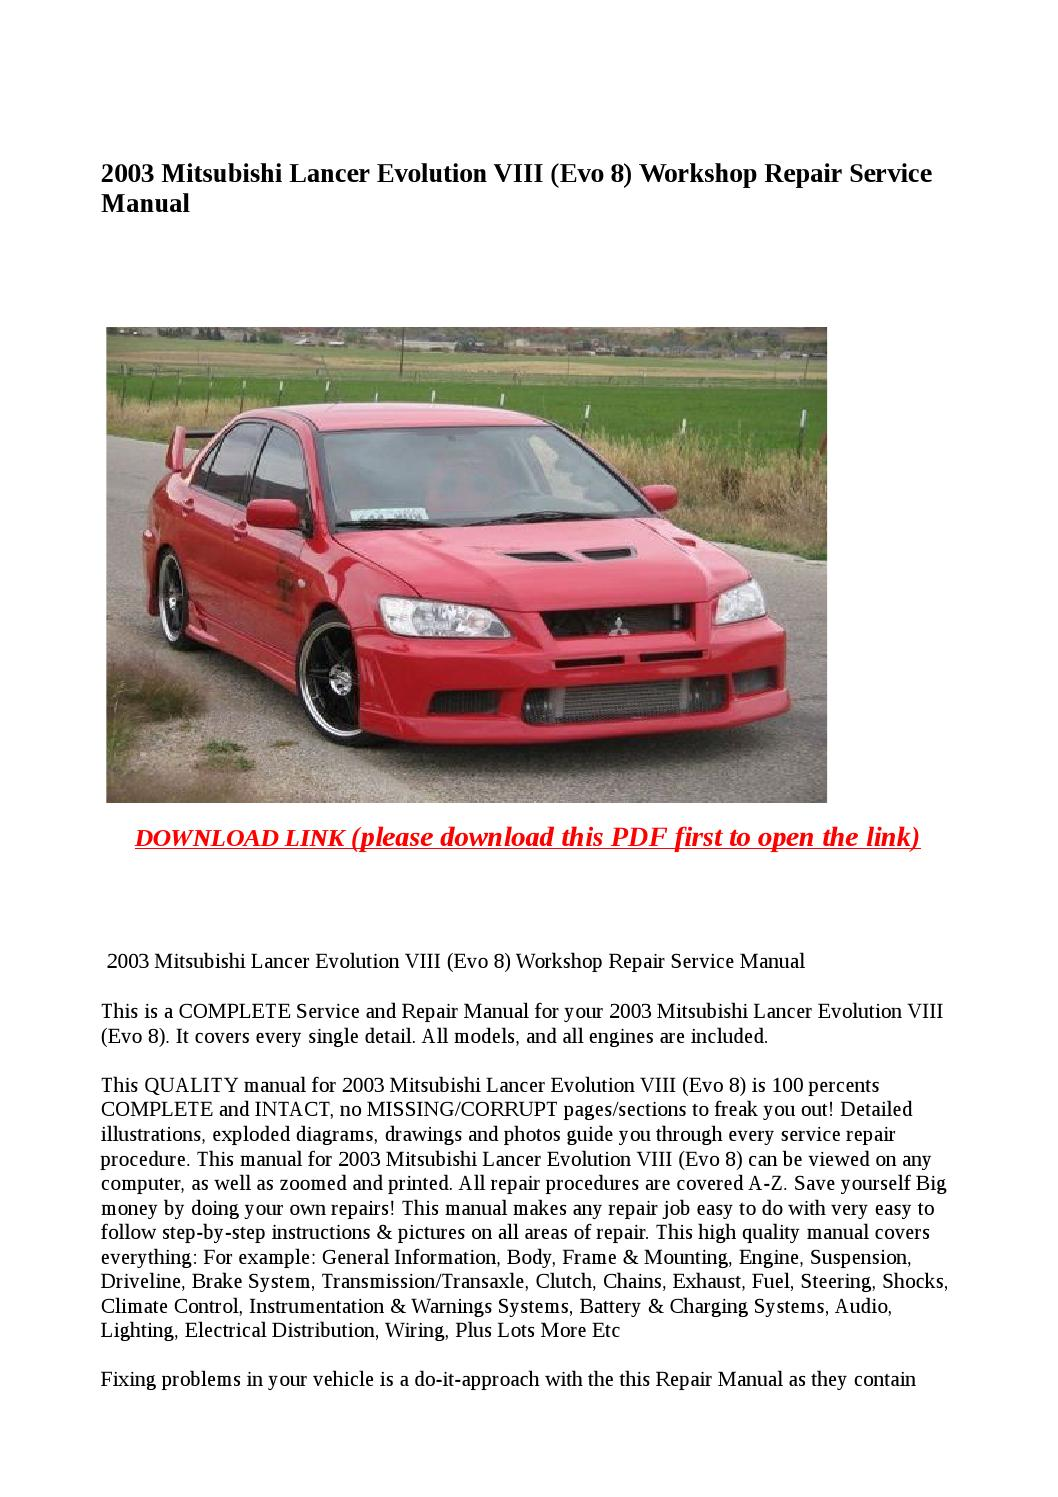 2003 mitsubishi lancer evolution viii (evo 8) workshop repair service manual  by Anna Tang - issuu